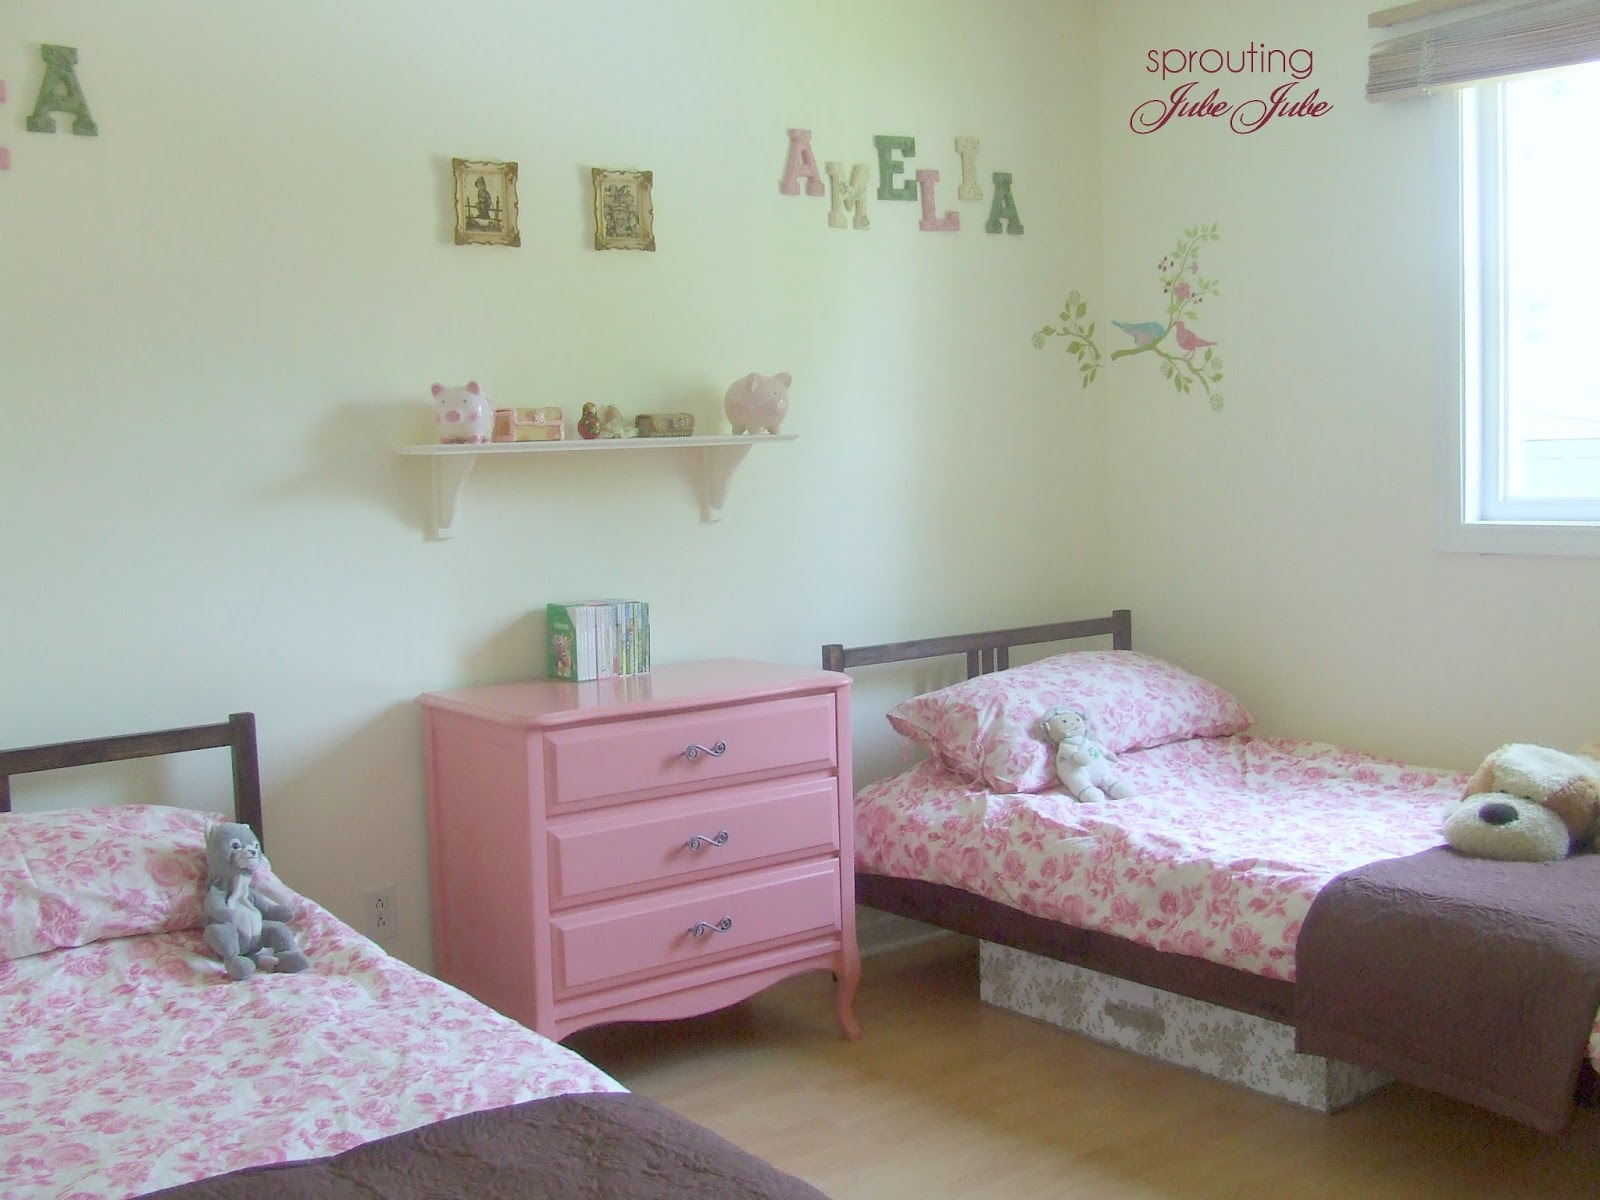 Sprouting Jubejube Bedroom Redo For Little Girls On A Budget